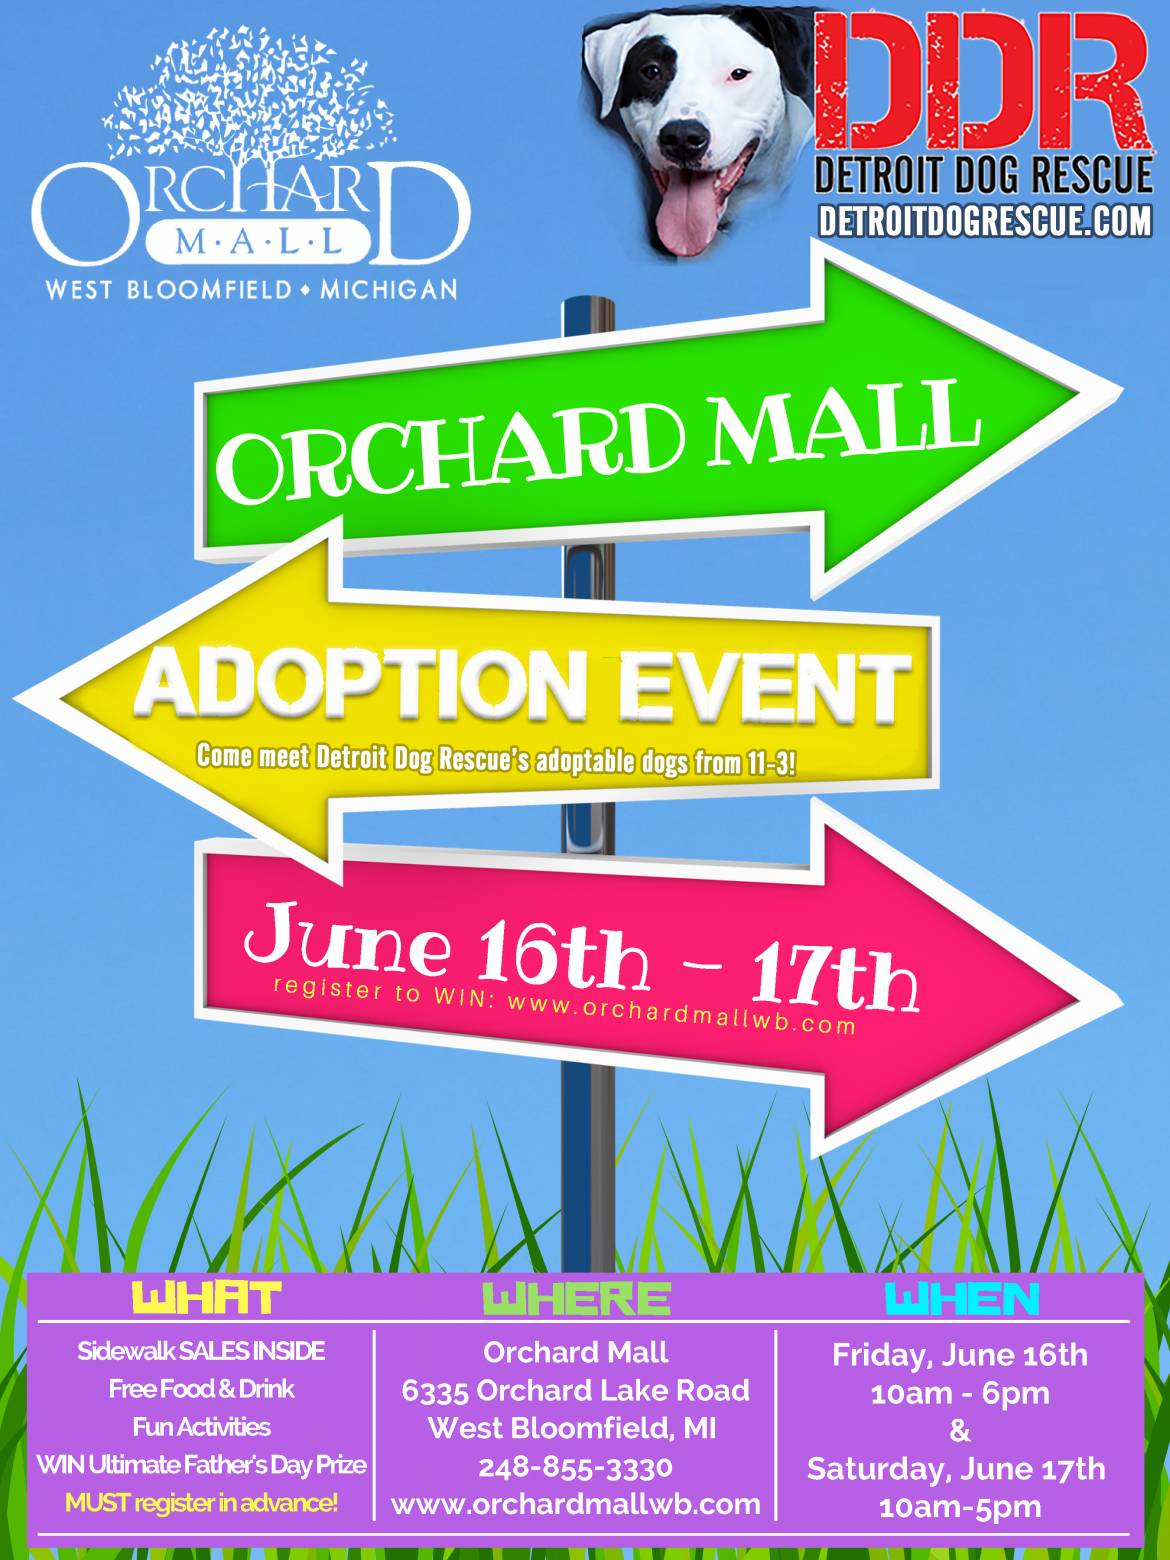 Orchard-Mall-Event-Flier-1.jpg